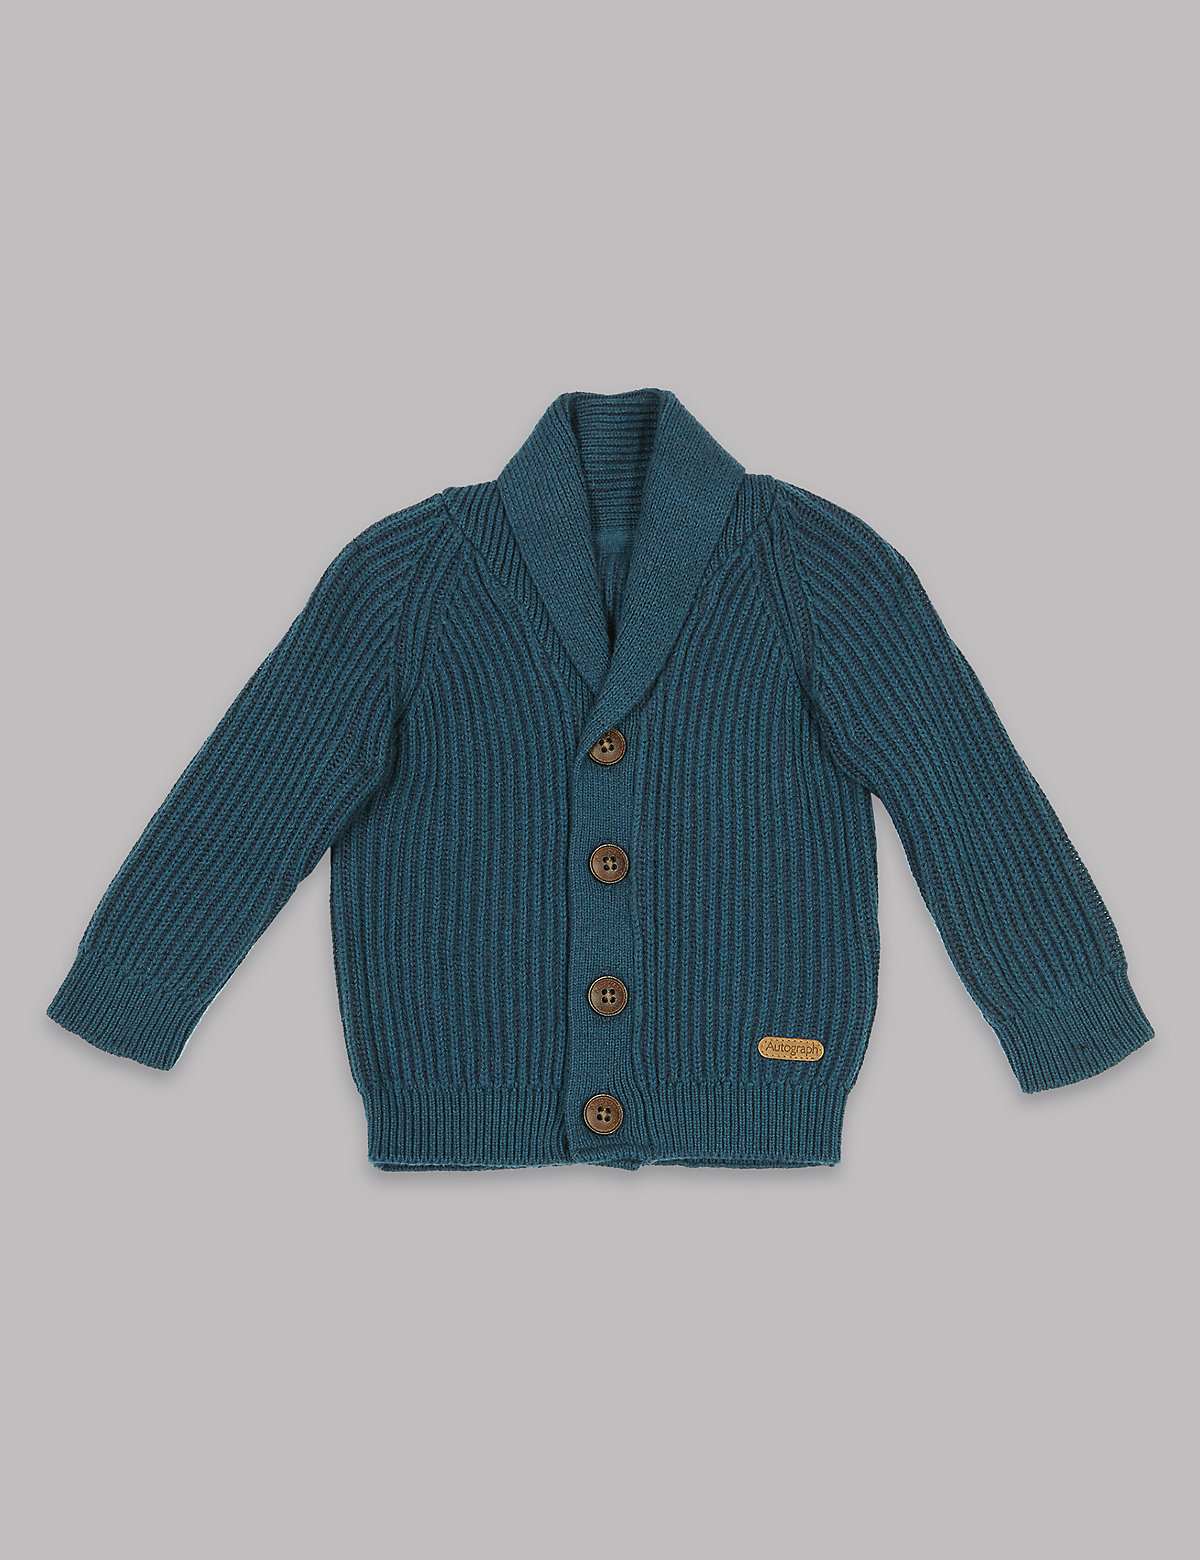 Autograph Cable Knit Shawl Collar Cardigan